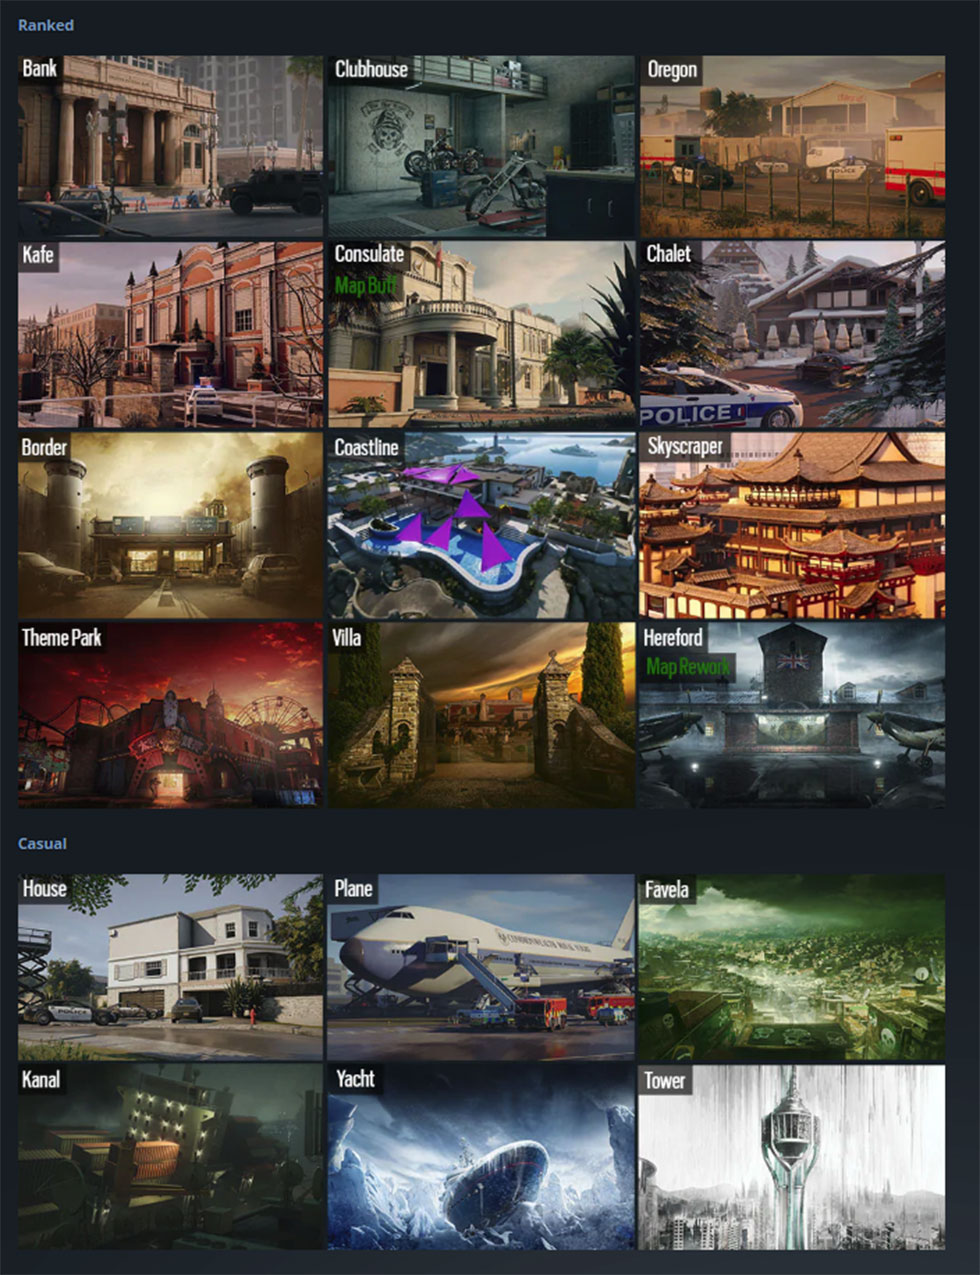 Rainbow Six Siege Maps Layout : rainbow, siege, layout, World, Library, Complete, Resources: